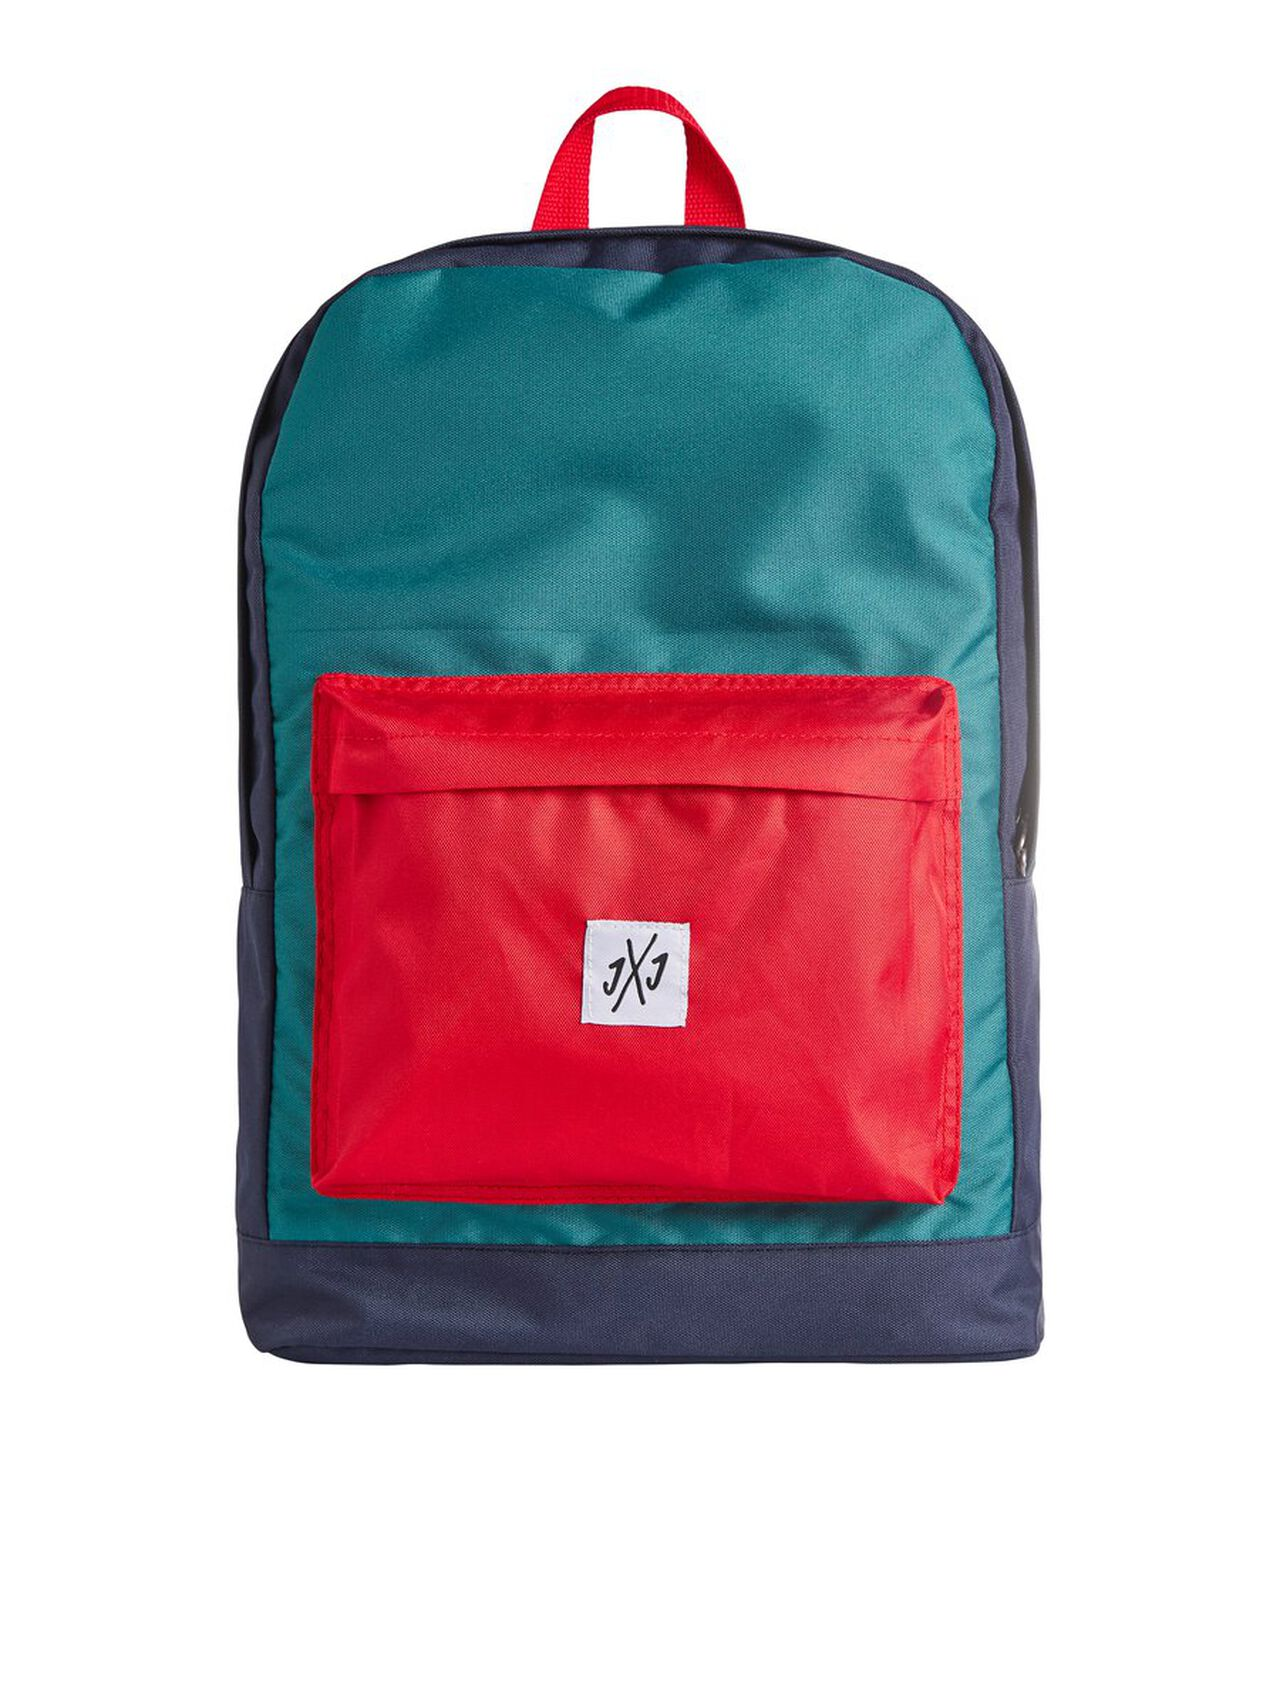 One Compartment Backpack